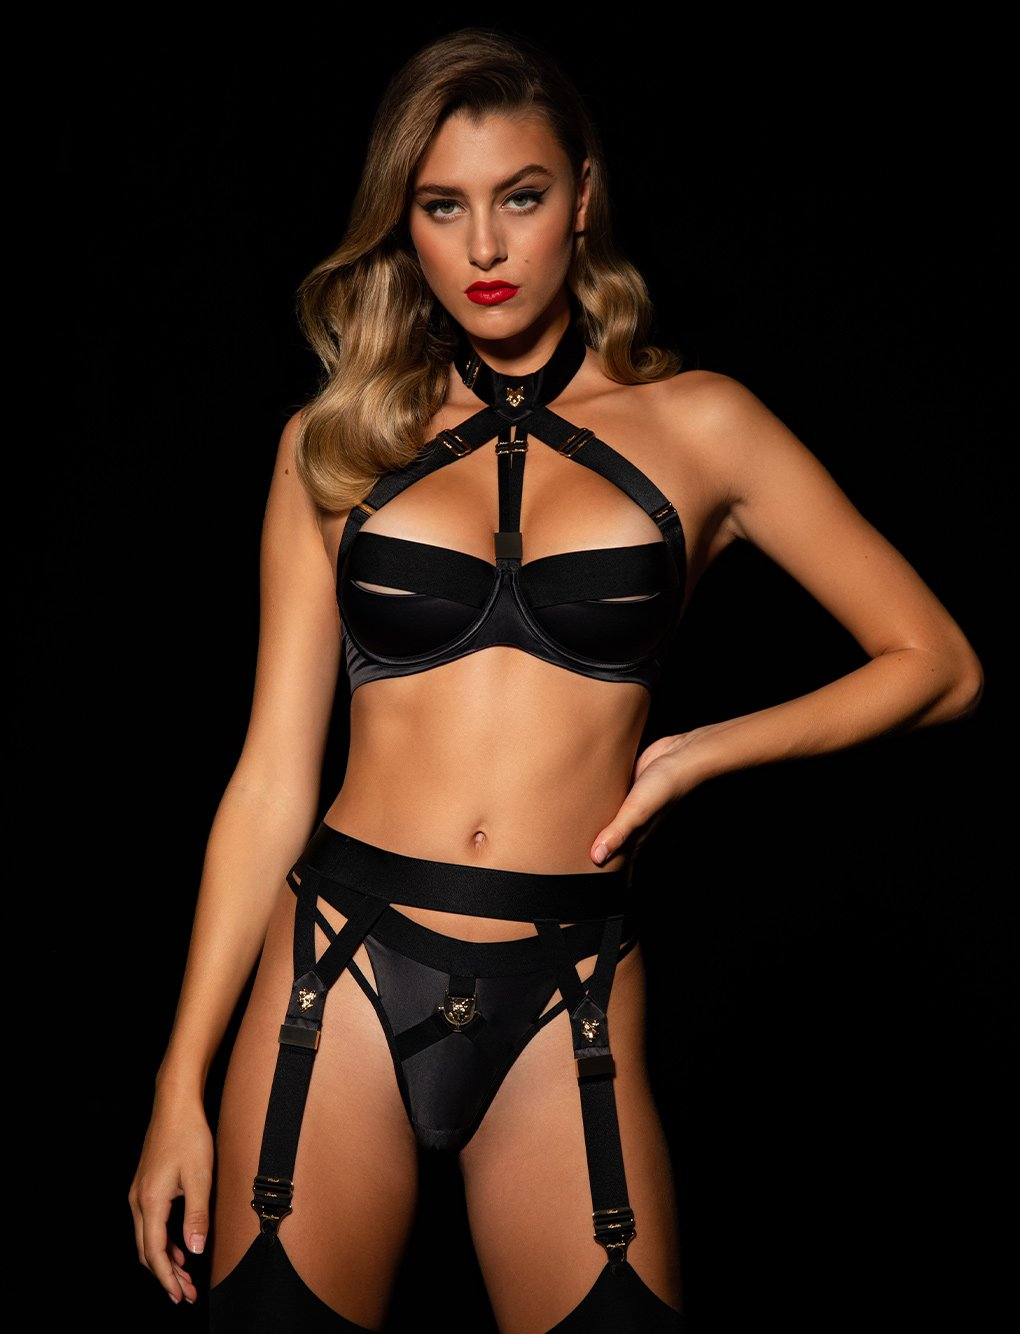 Watson Collared Bra 3 Piece Set